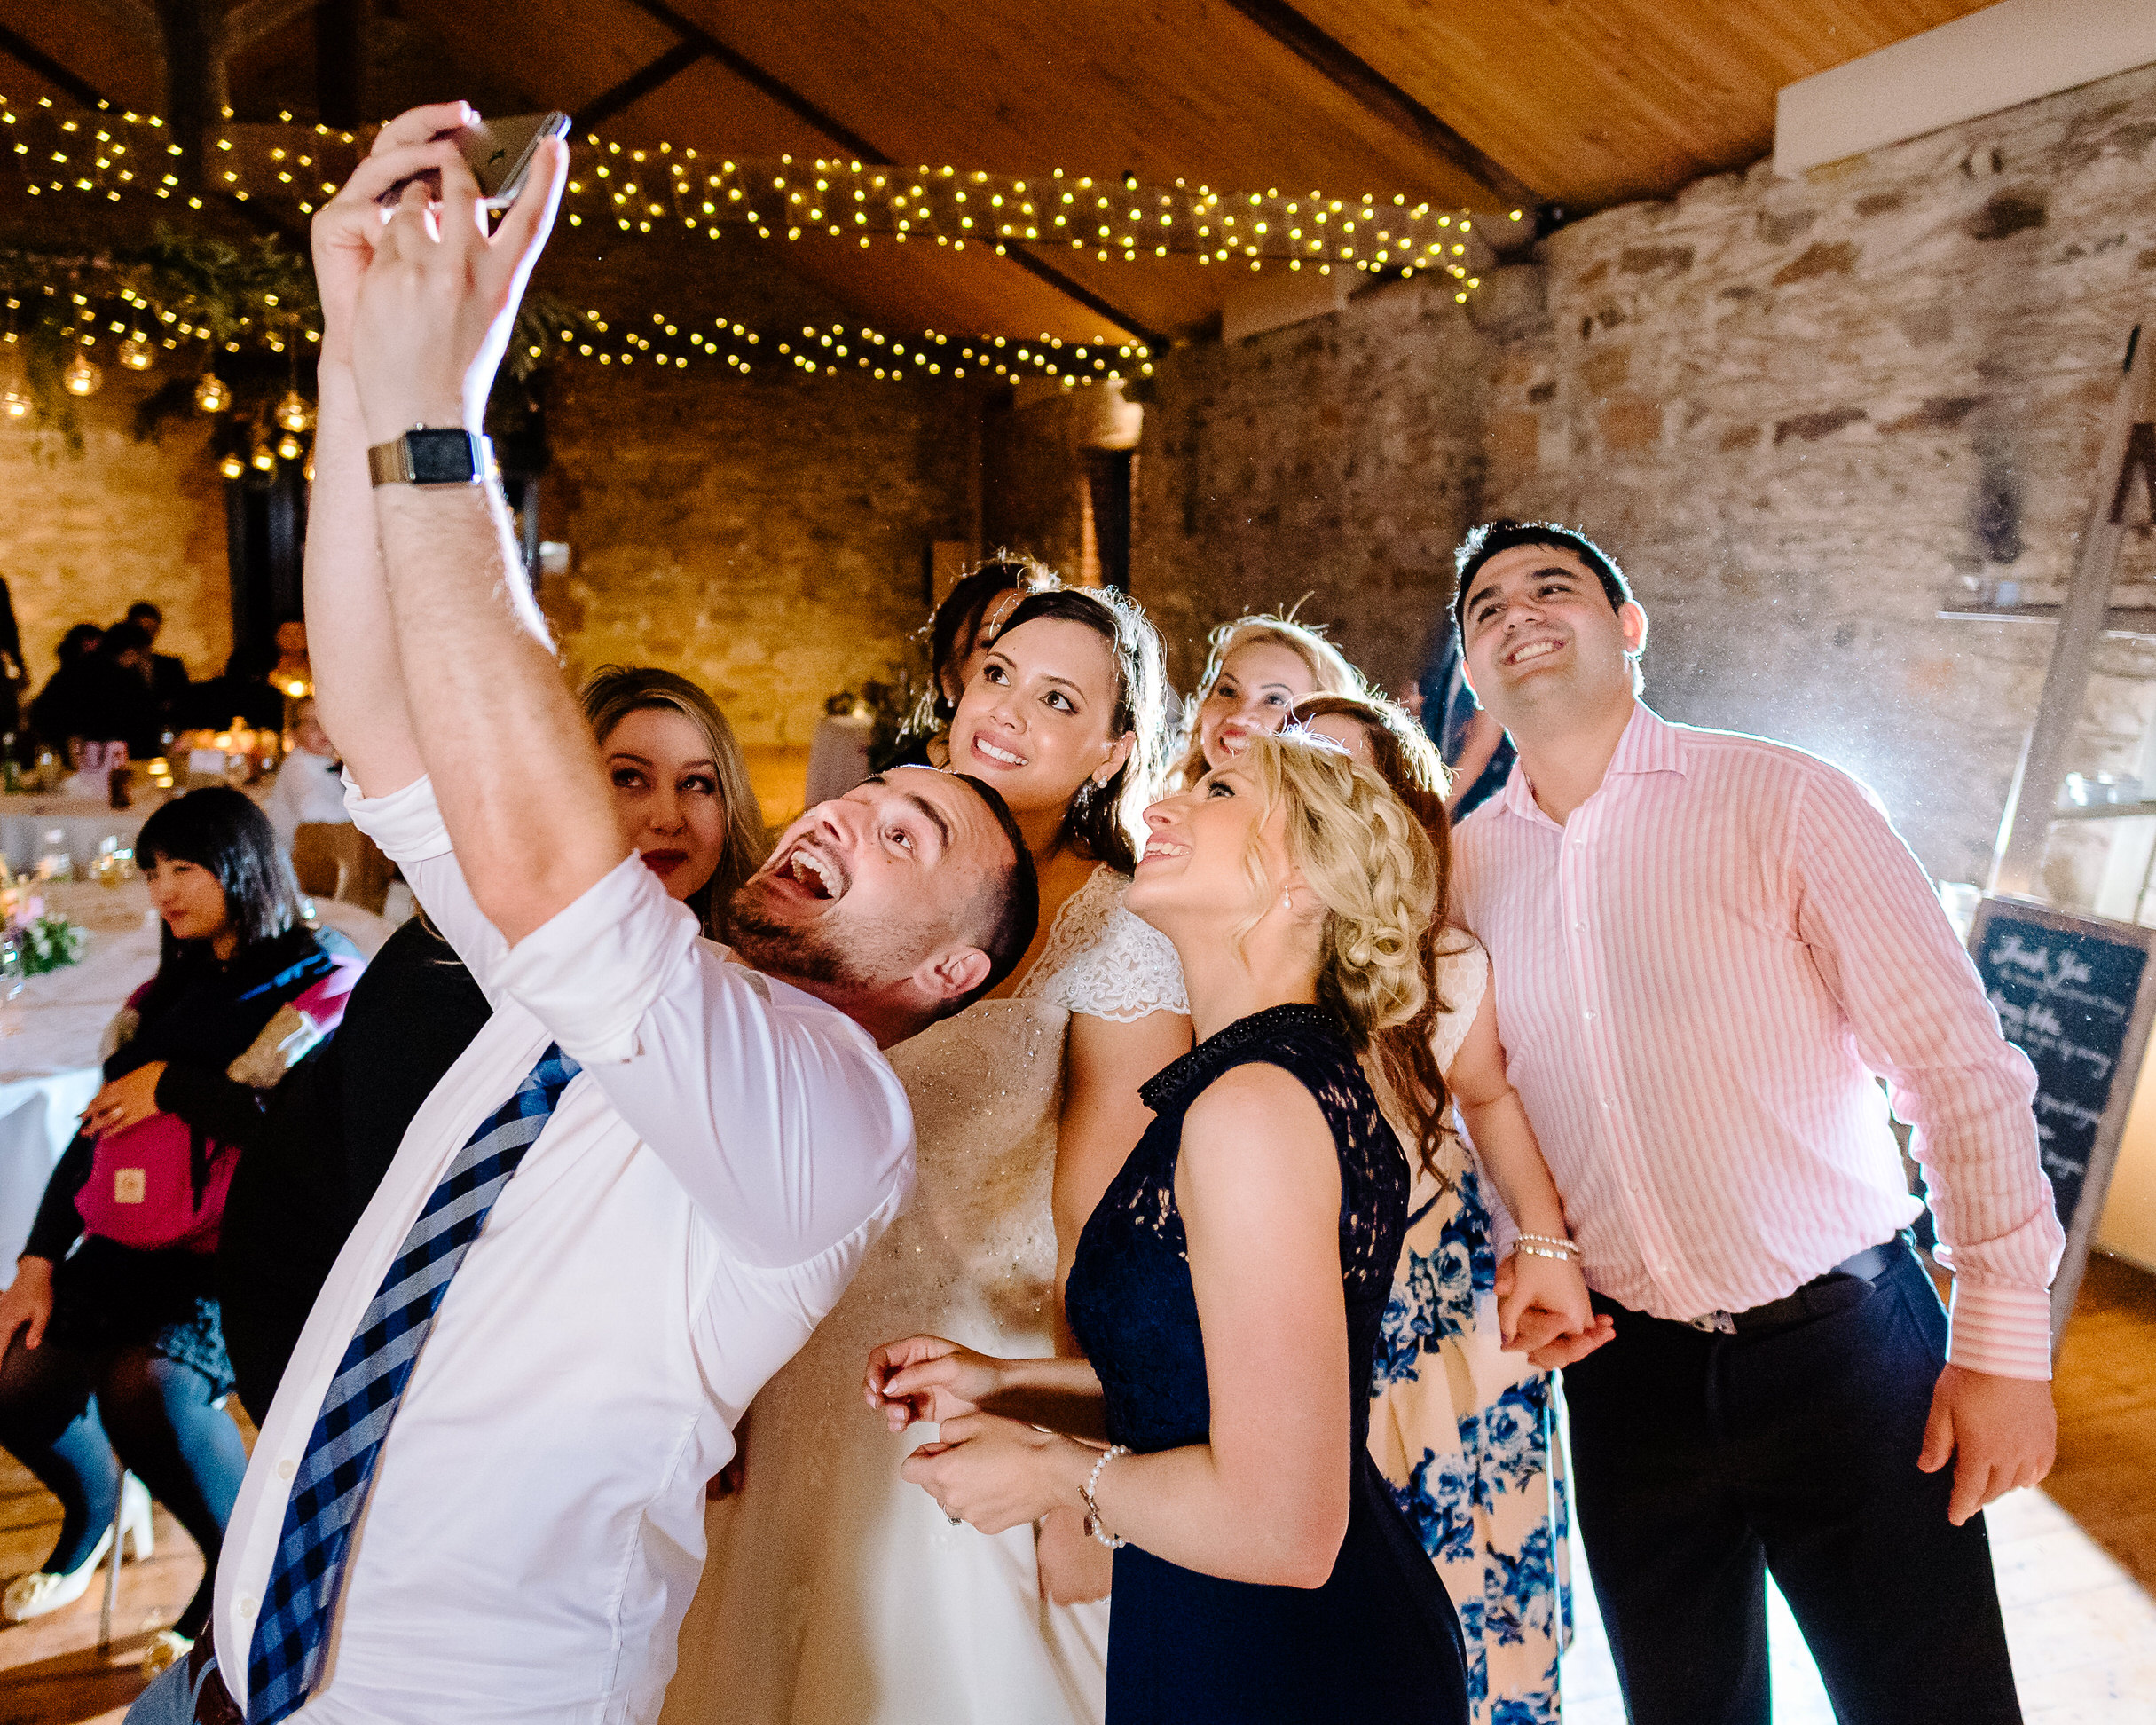 Chateau_Dore_Wedding_Photography_Justin_and_Jim-269.JPG